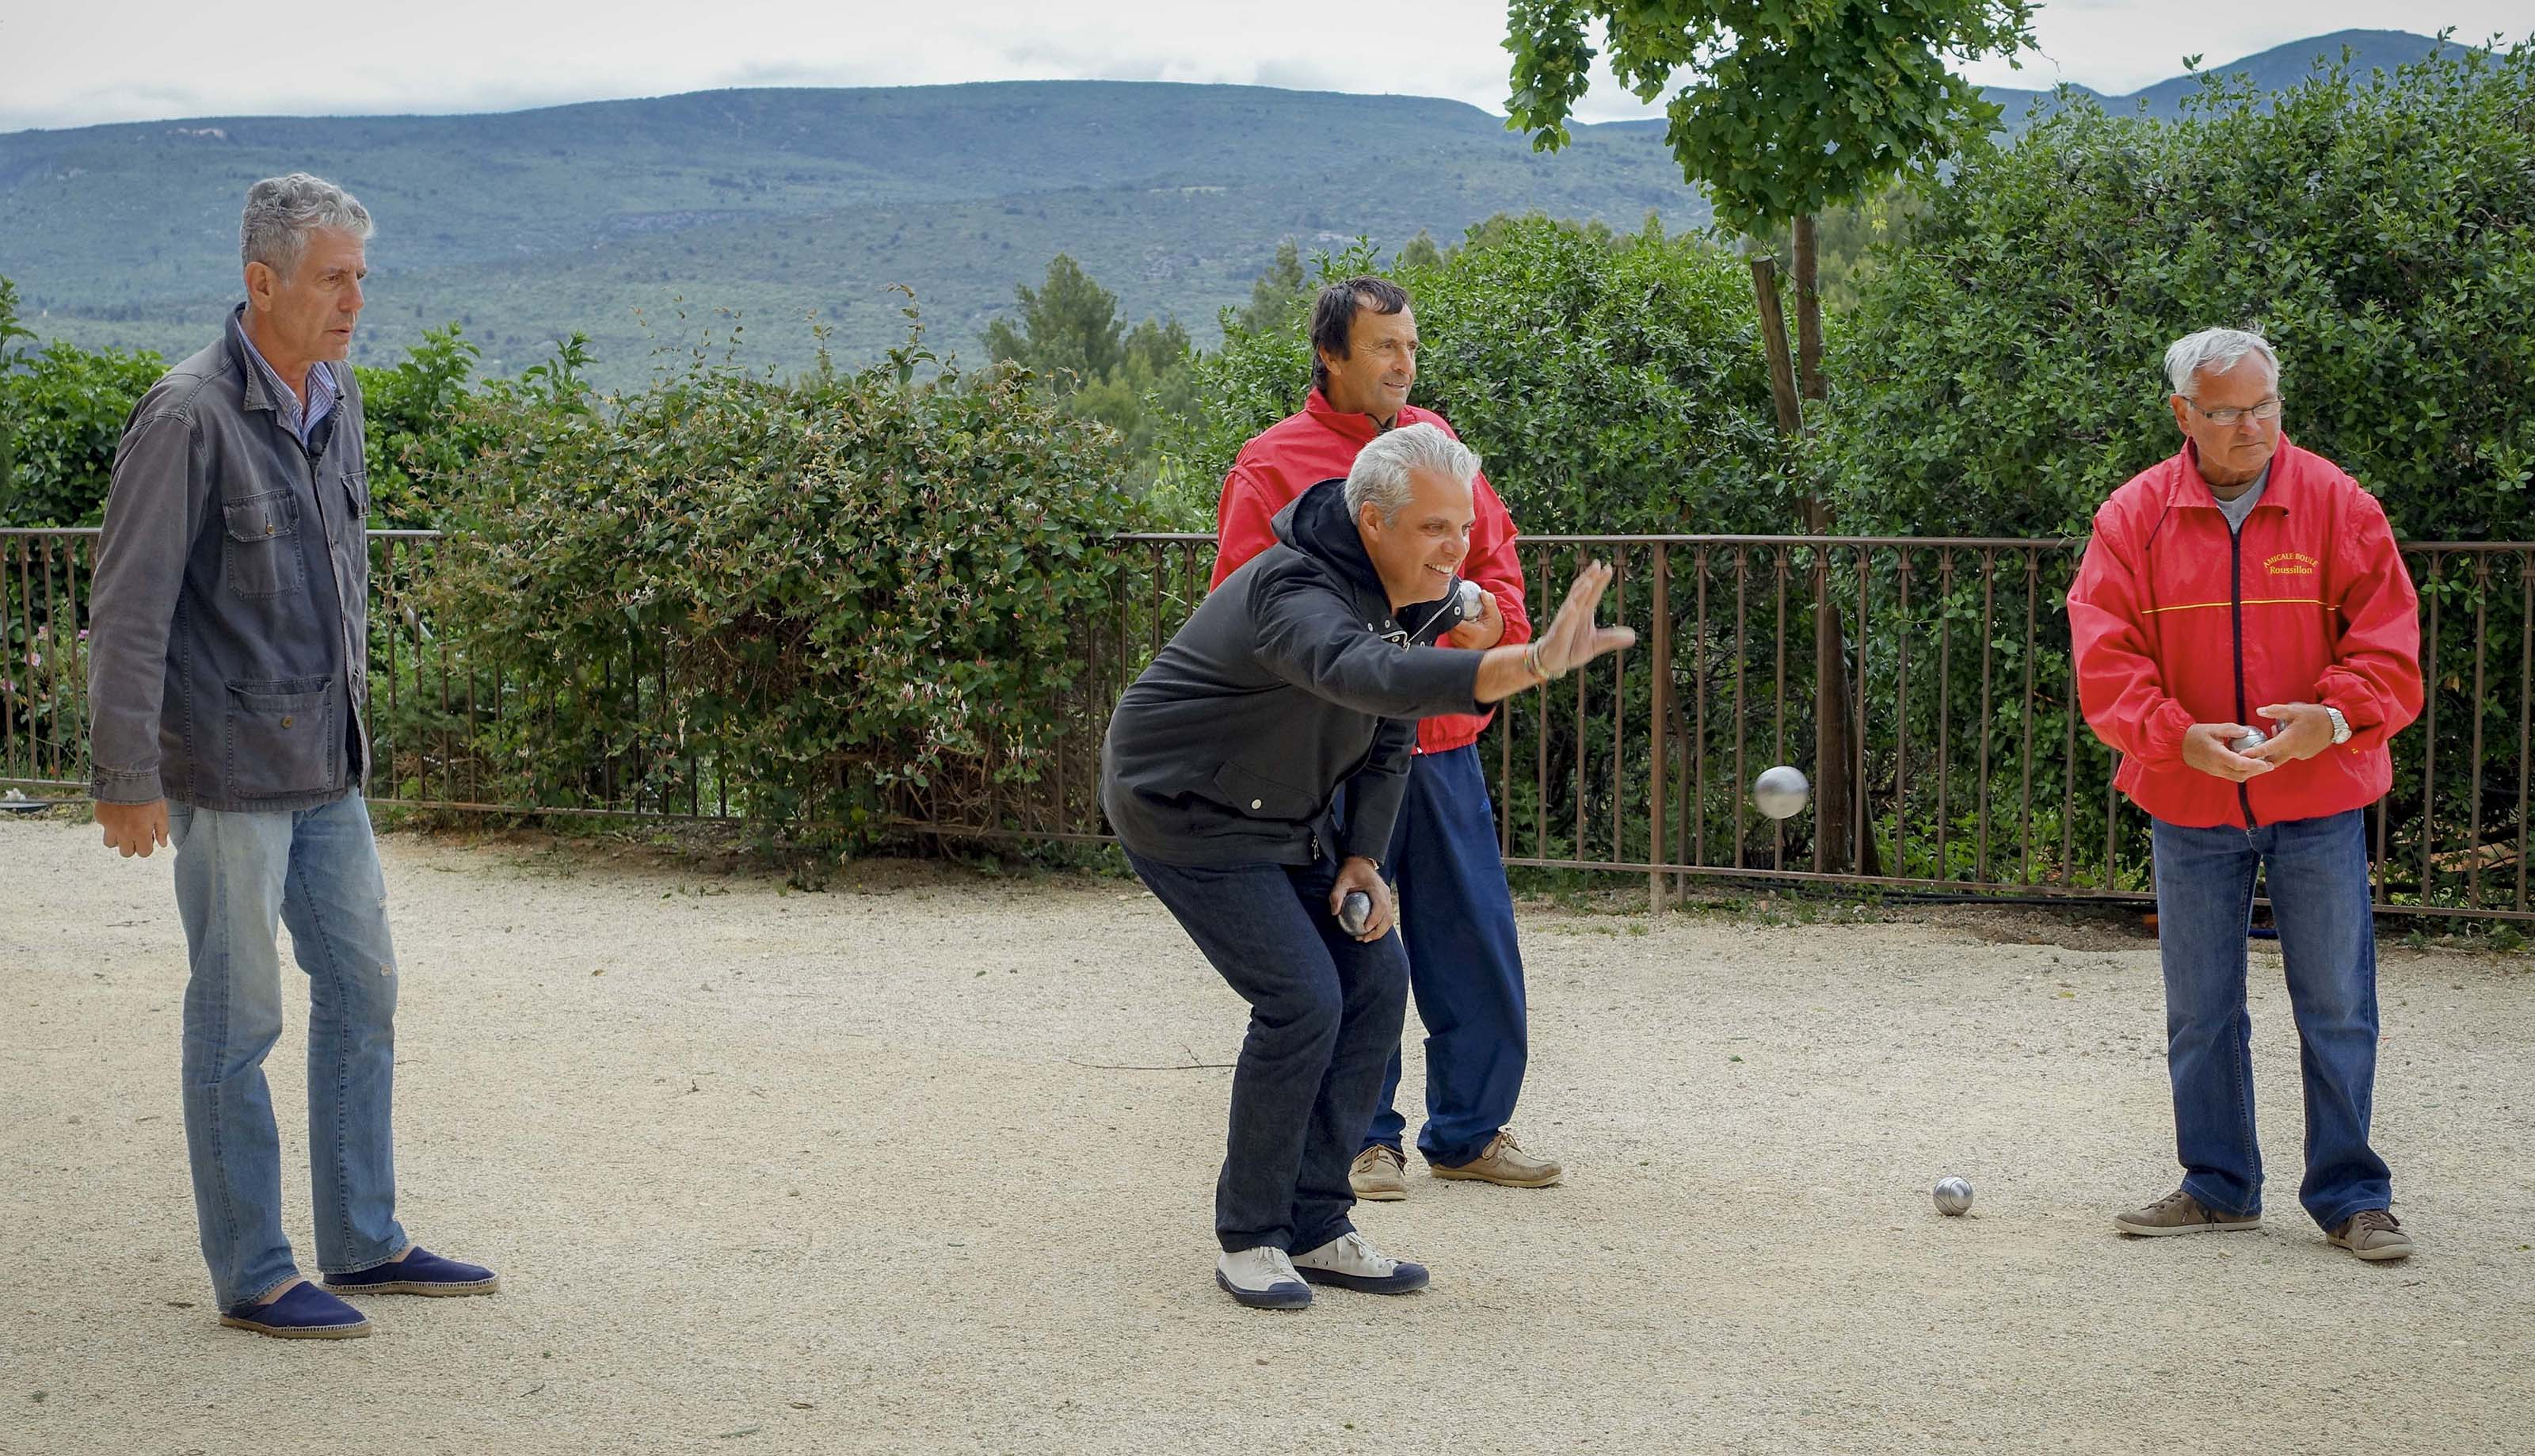 """Bourdain: """"I have no idea how we won this game of petanque."""""""